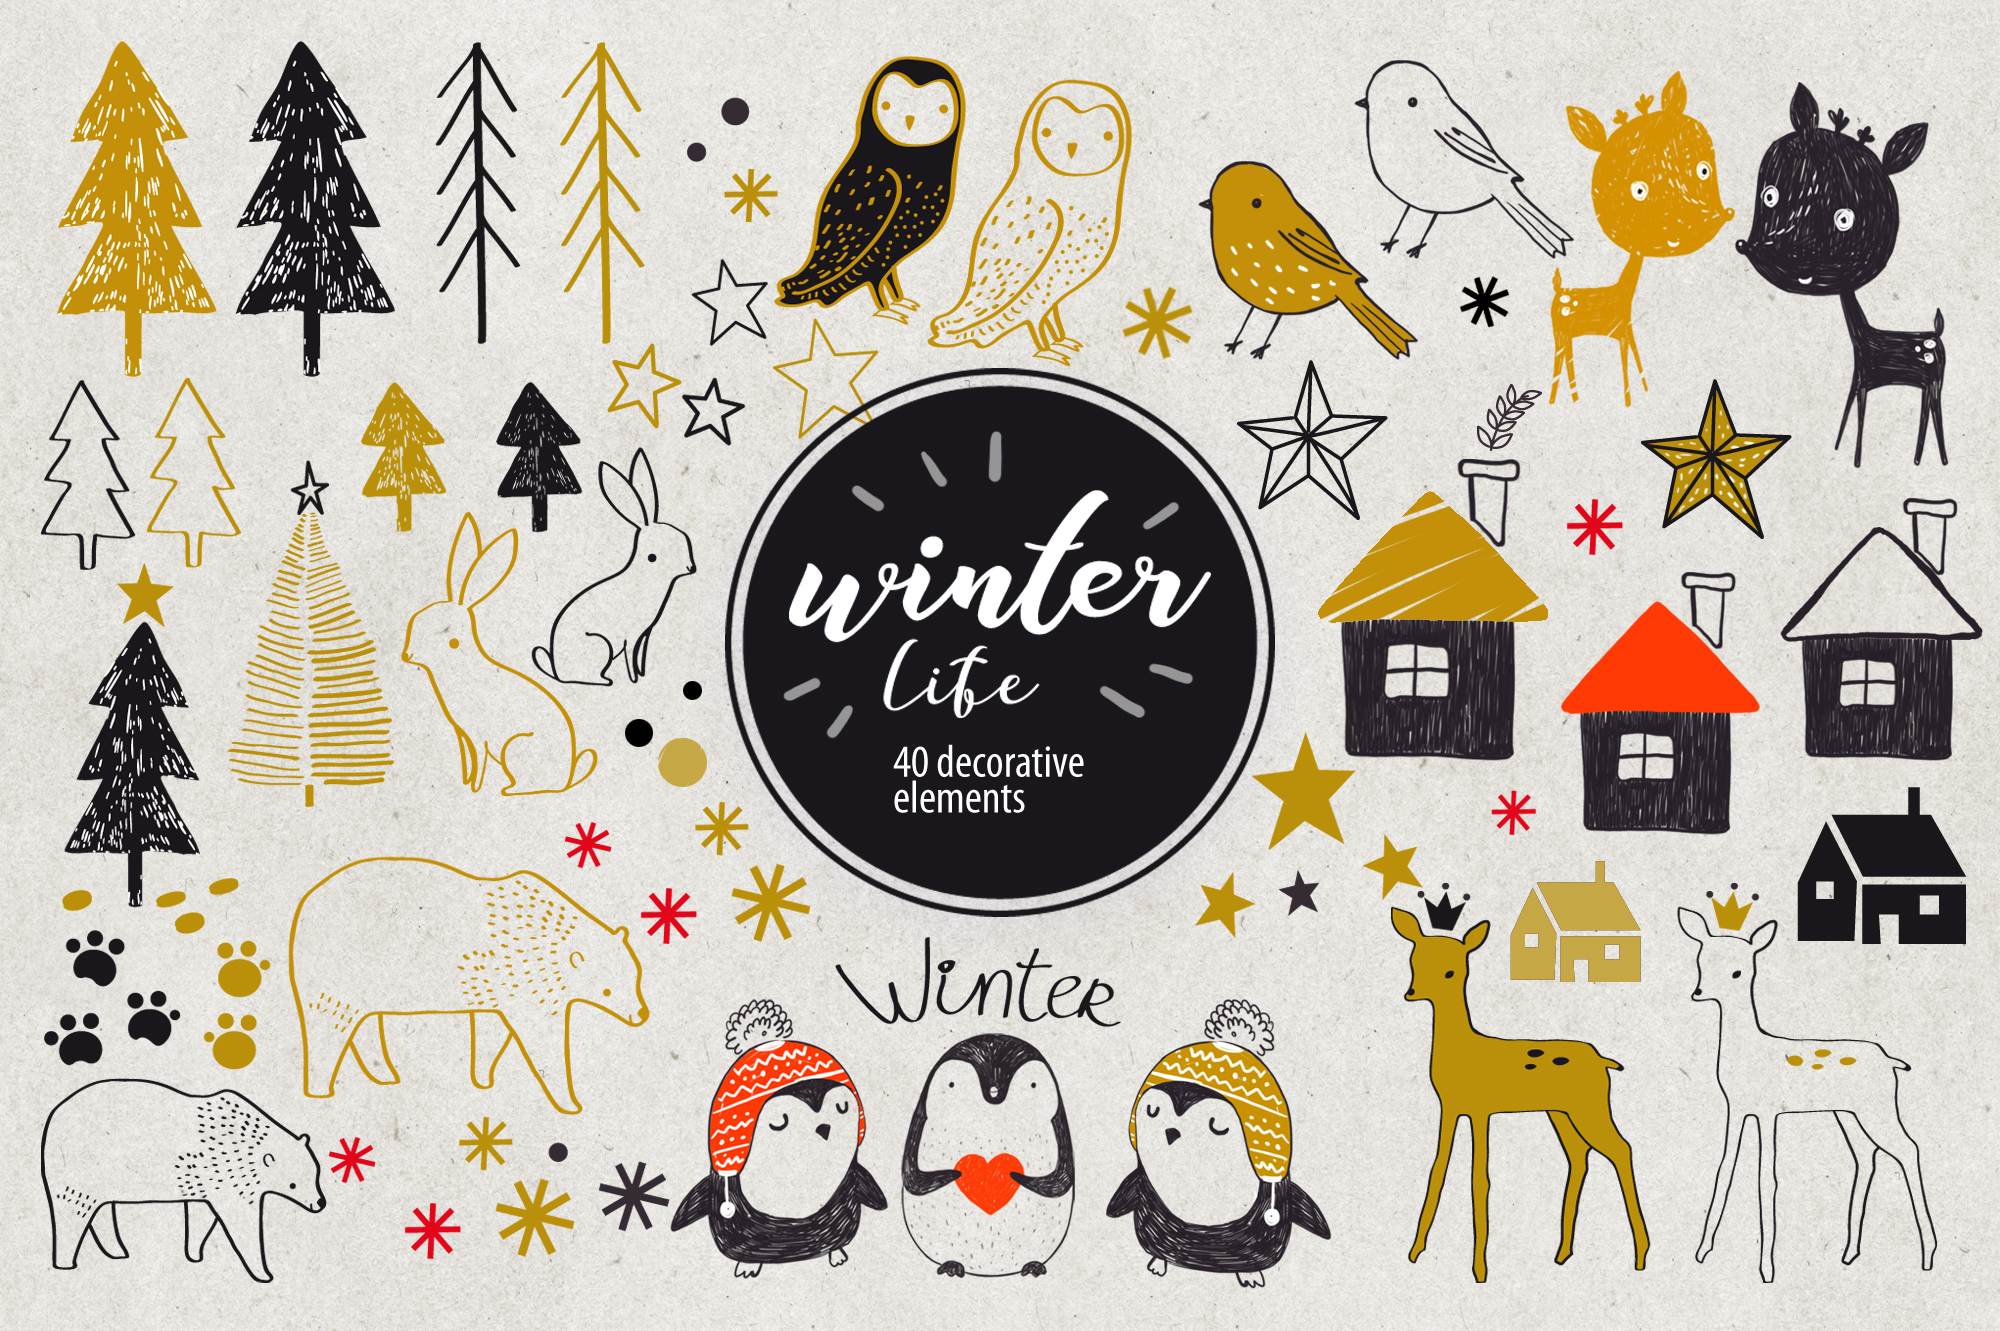 Winter Life (40 Decorative Elements) Graphic Graphic Templates By sto-va